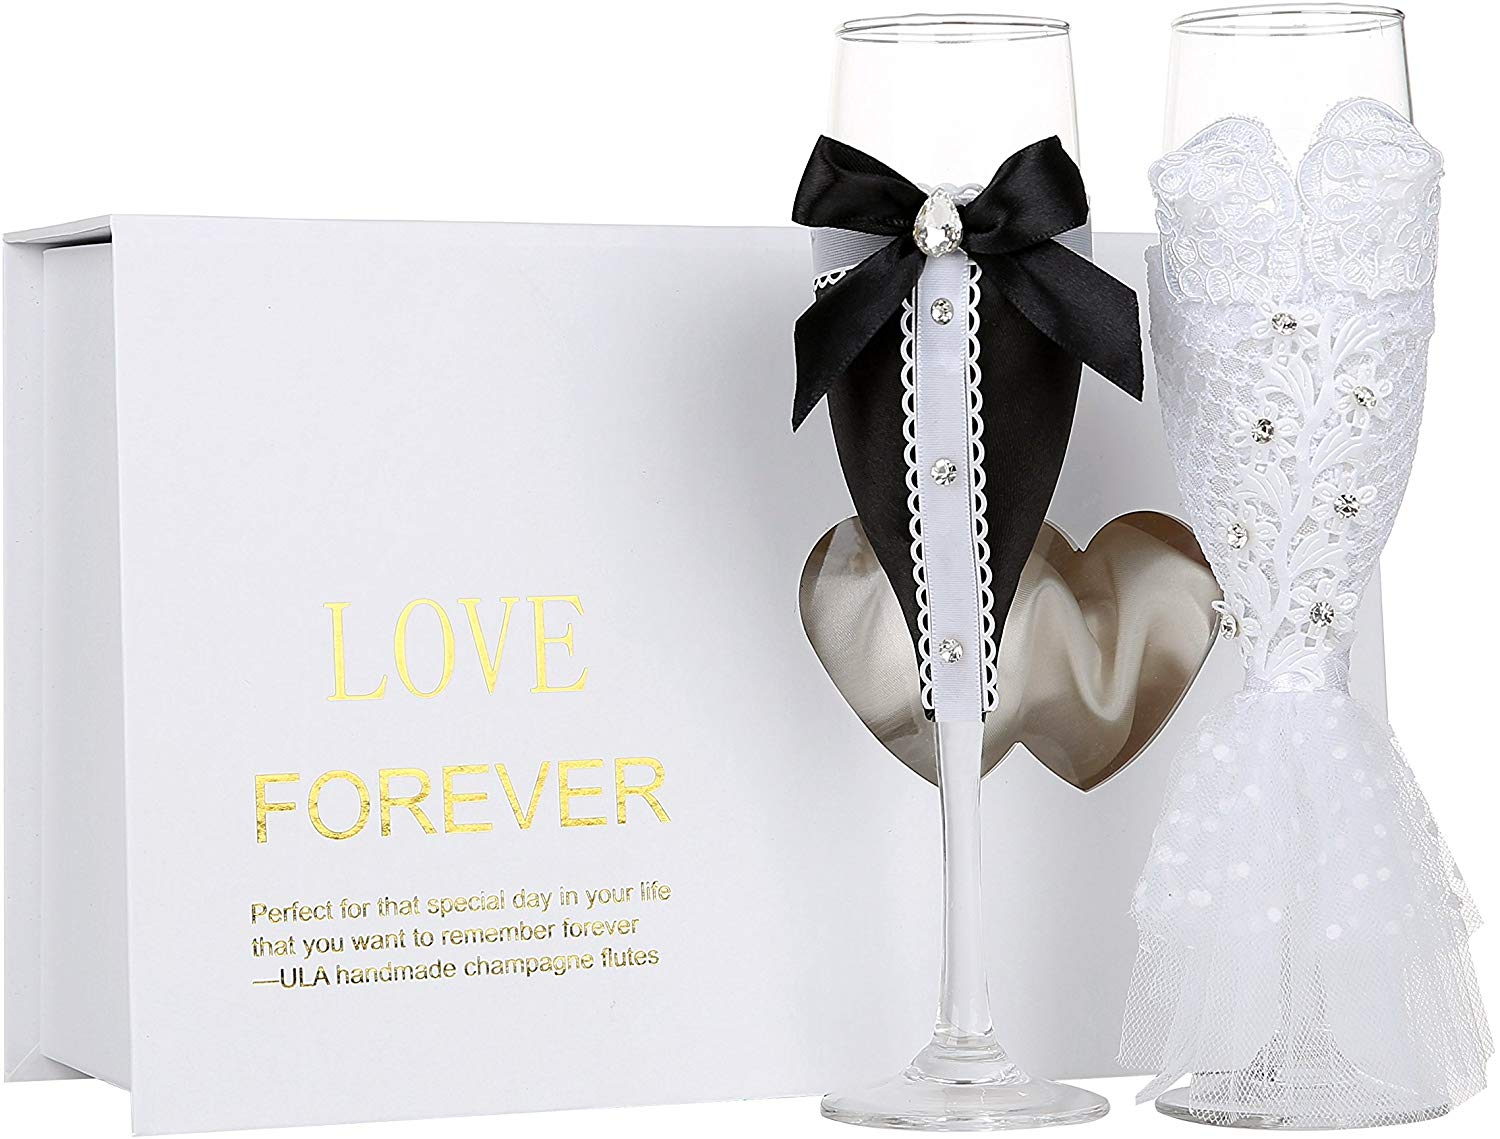 Handmade Wedding Champagne Flutes-Bride and Groom Design-Bridal Shower Gifts,Wedding Gifts,Couples Gifts,Anniversary Gifts(Set of 2) (Black Bow and White Dress Gorgeous)